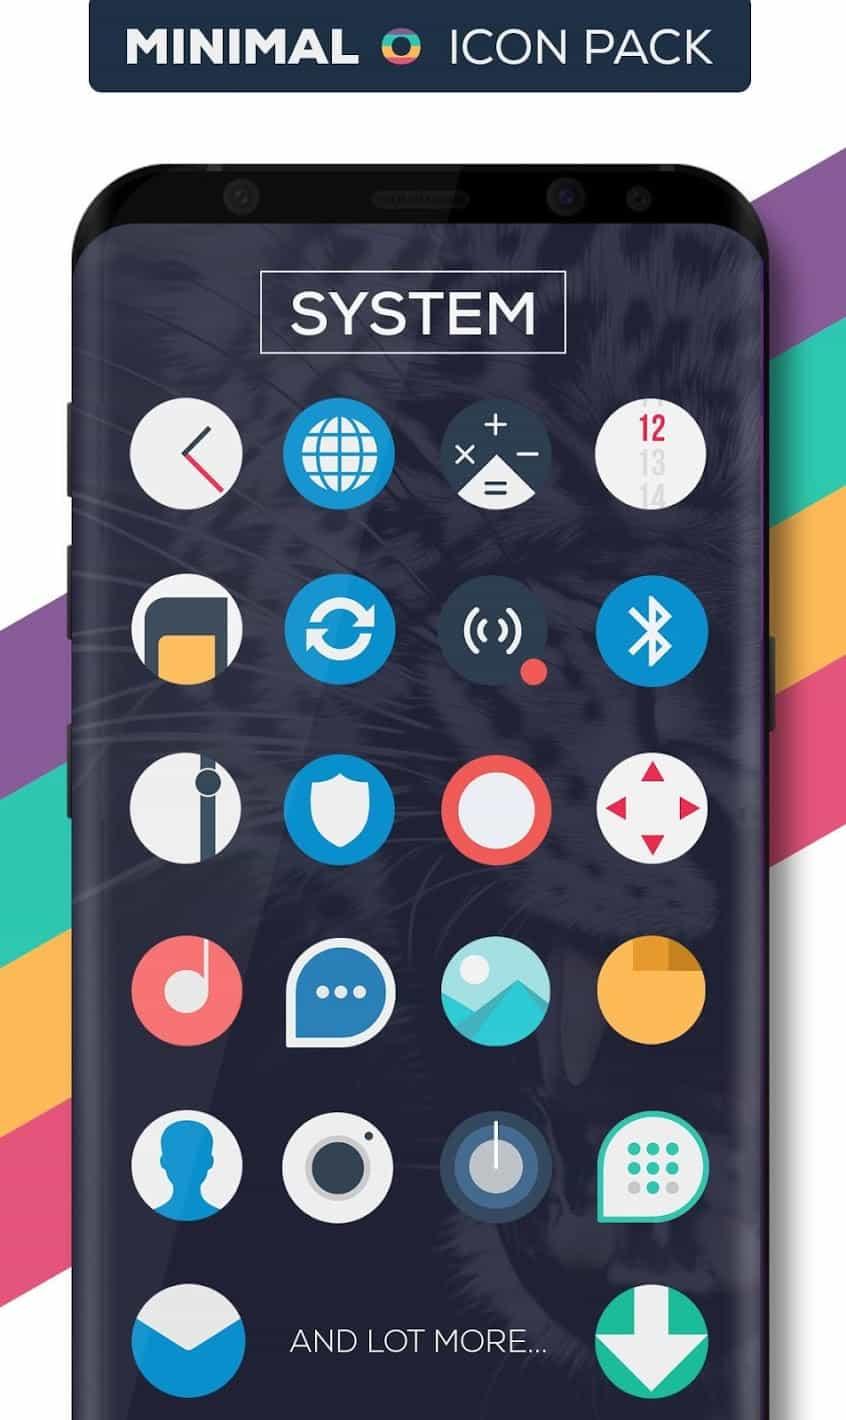 Minimal O Icon Pack Patched APK